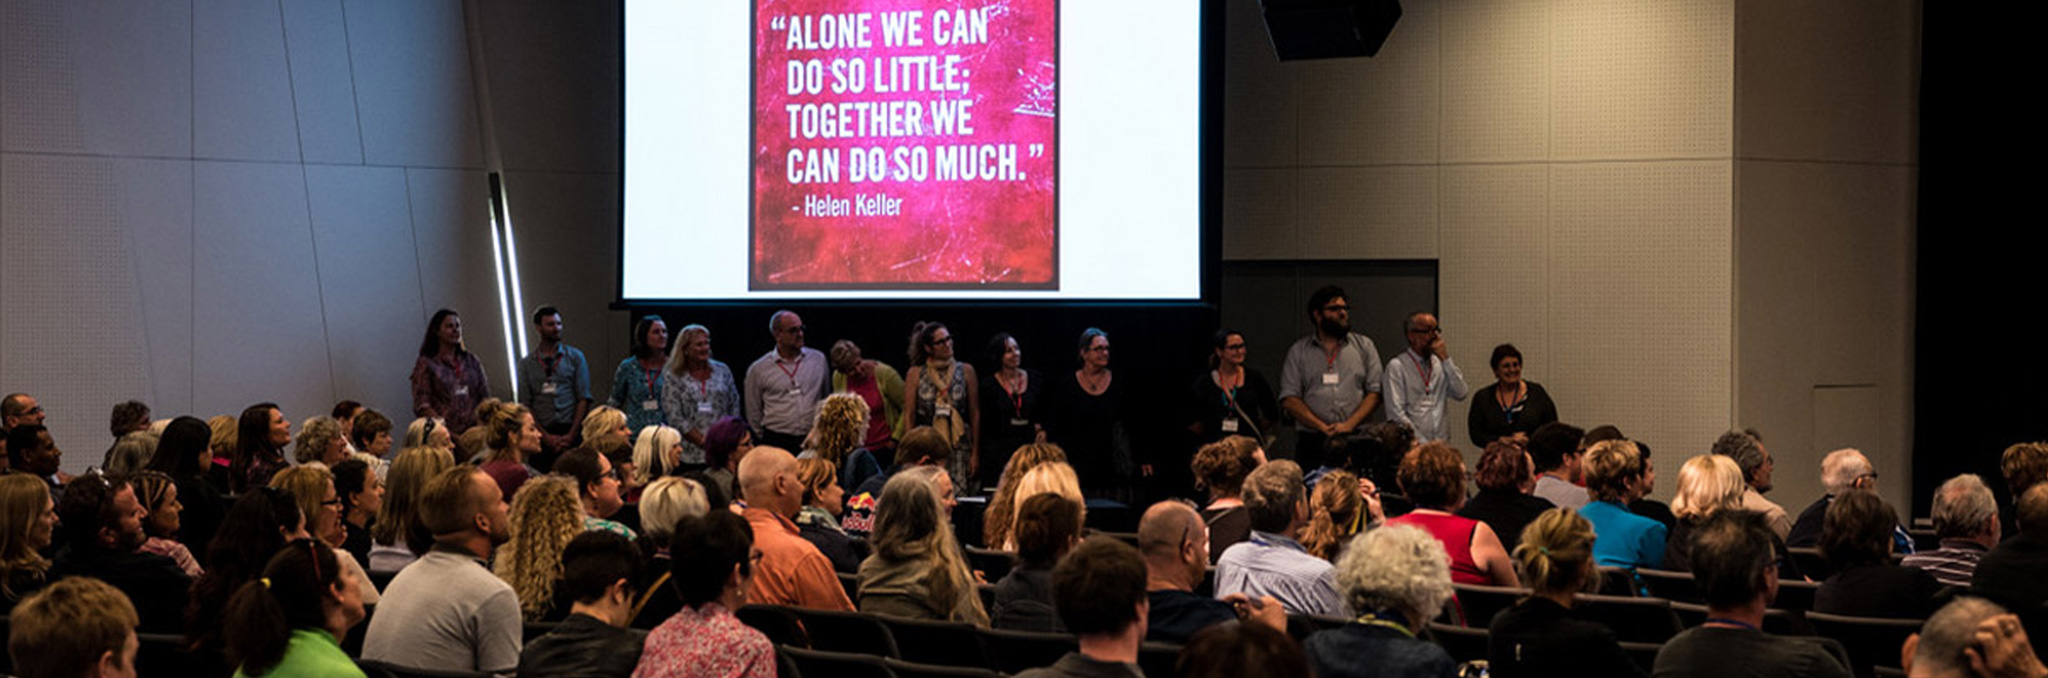 cru board and staff standing in line at the front of a conference under a slide that reads 'alone we can do so little, together we can do so much' by Helen Keller